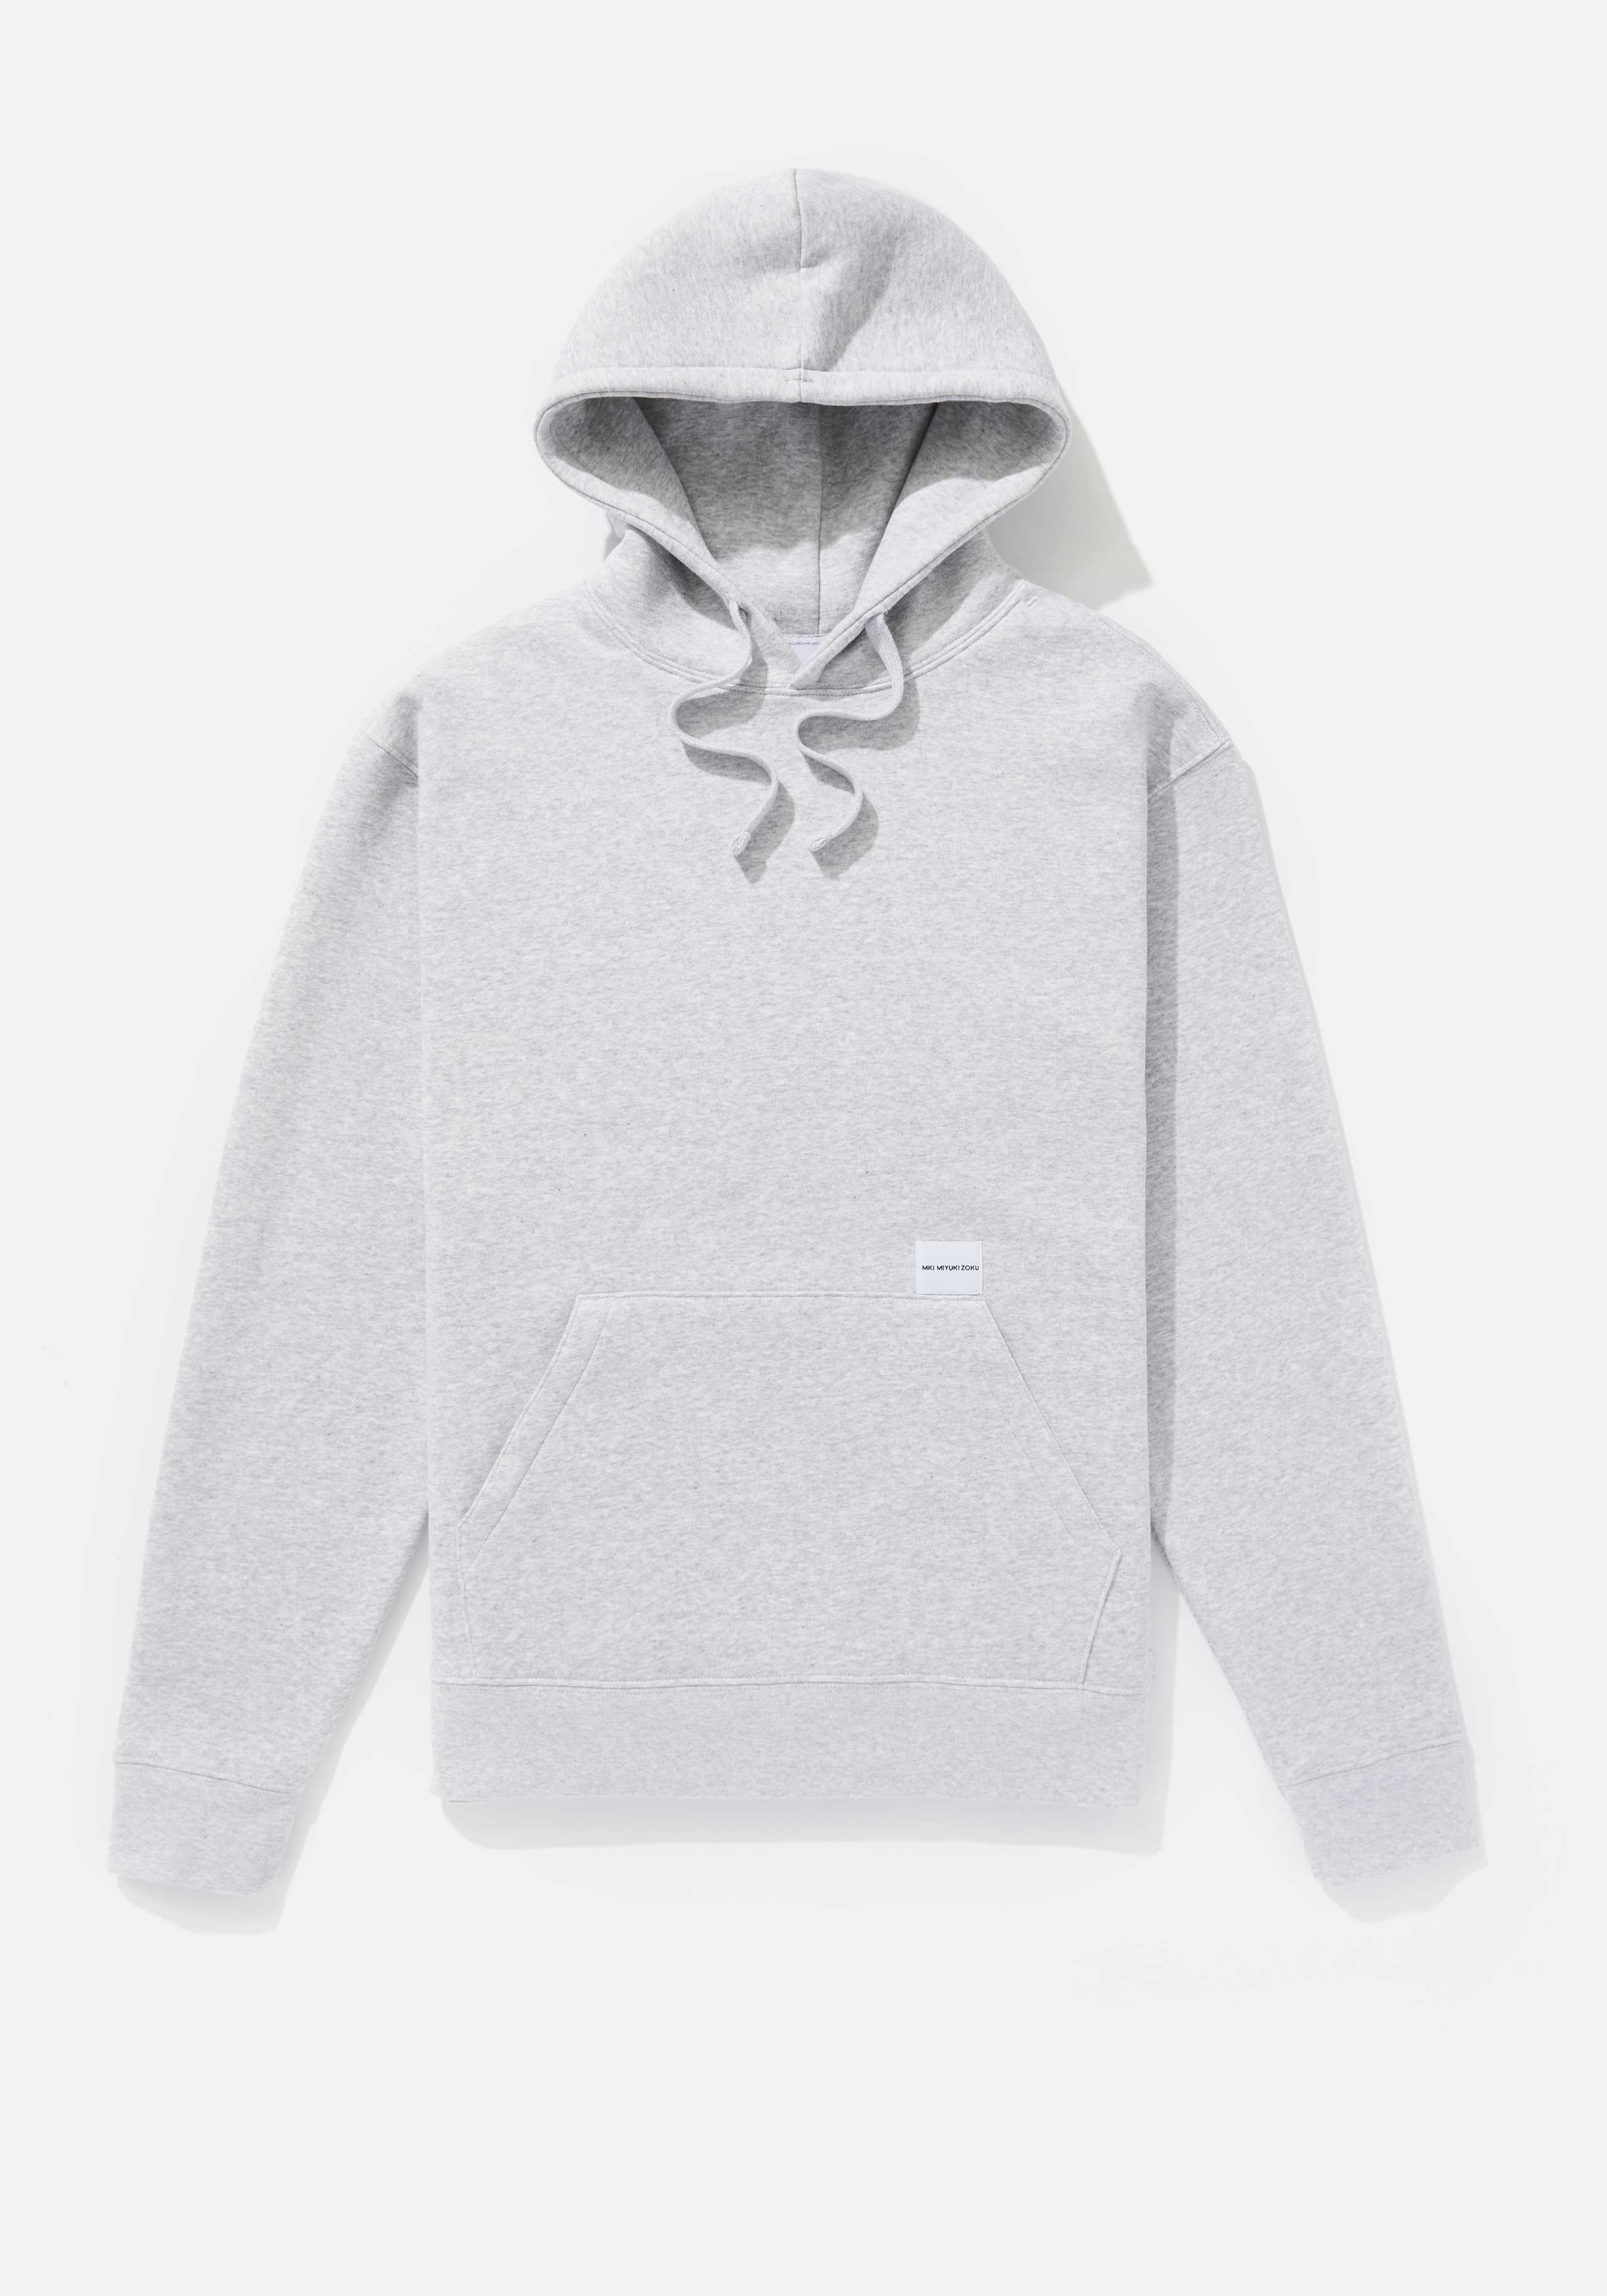 mki relaxed basic hoody 1